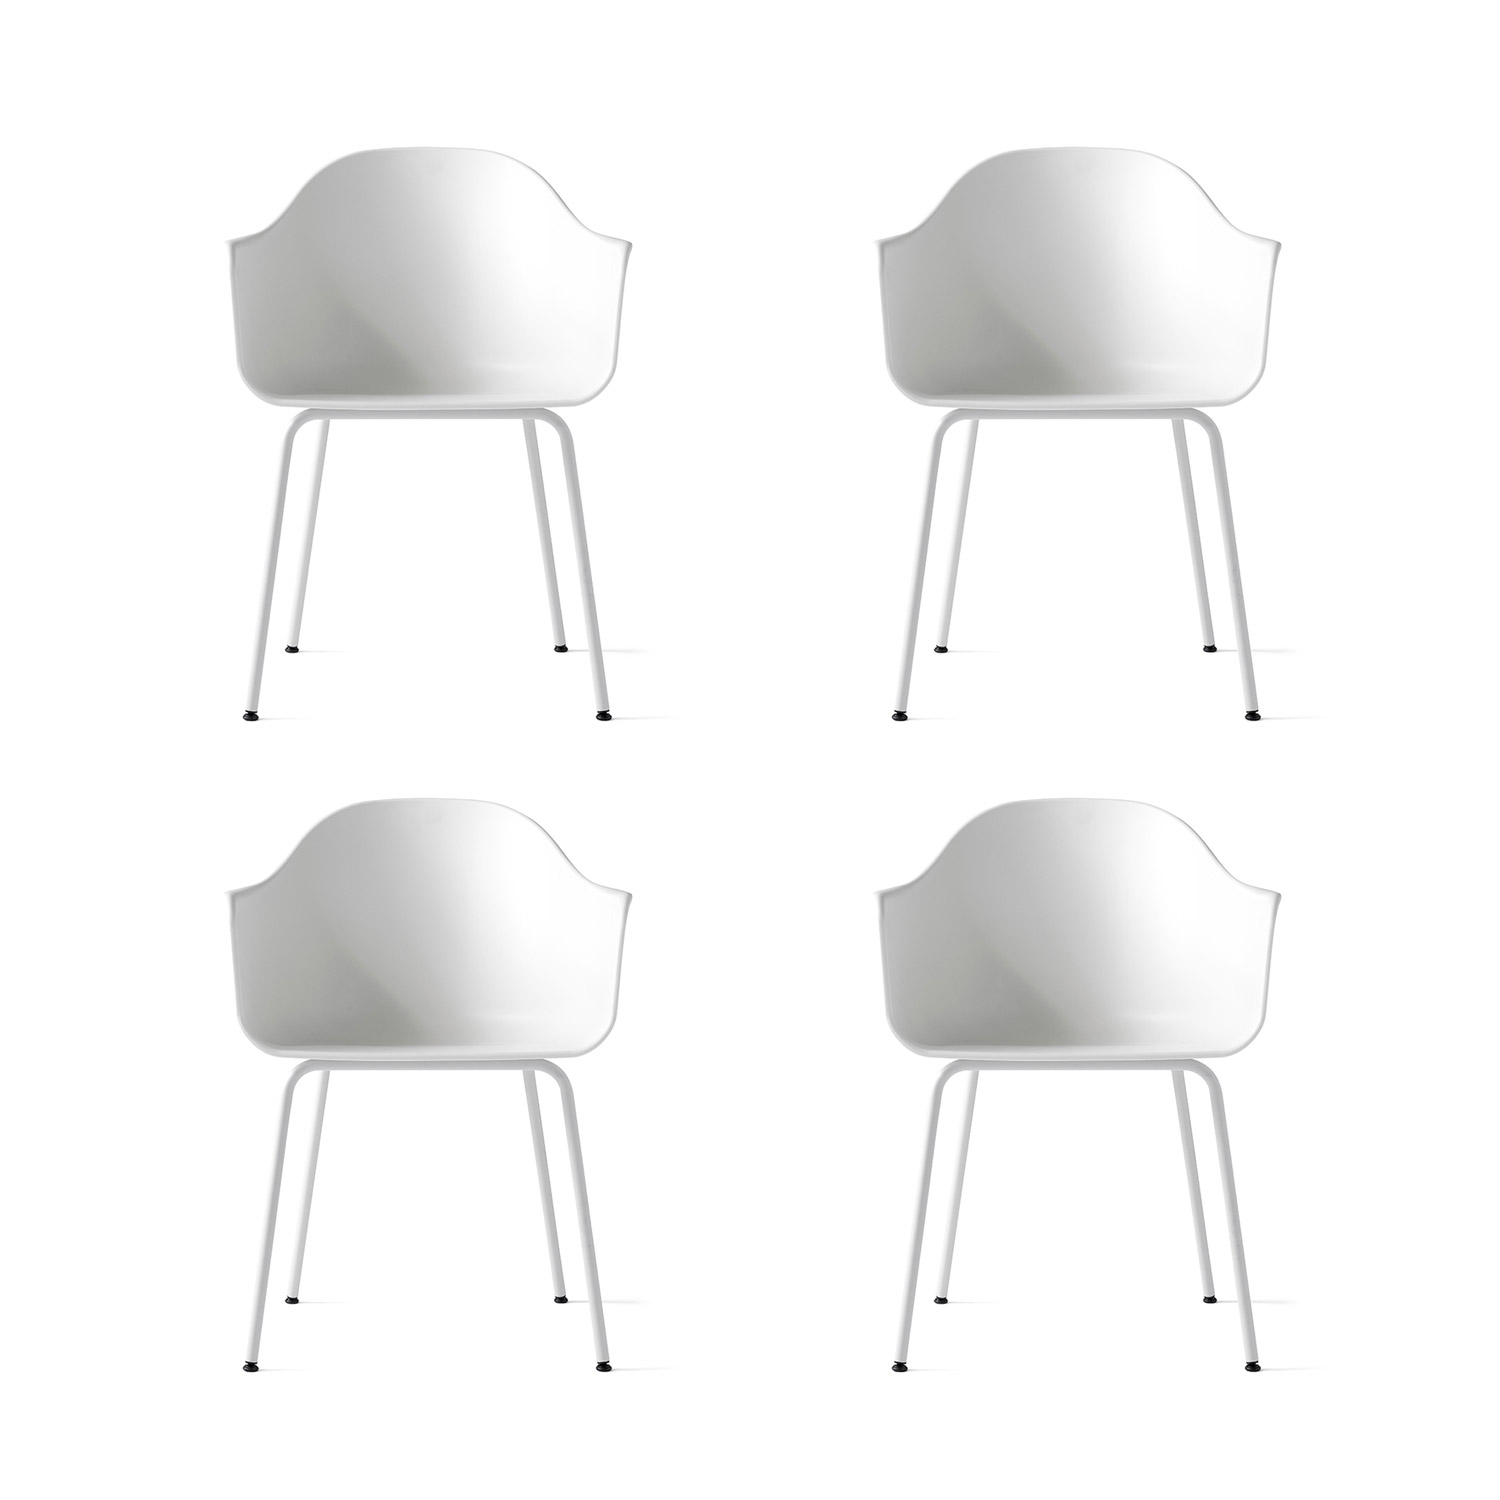 Harbour Chair 4-pack, lysegrå/lysegrå